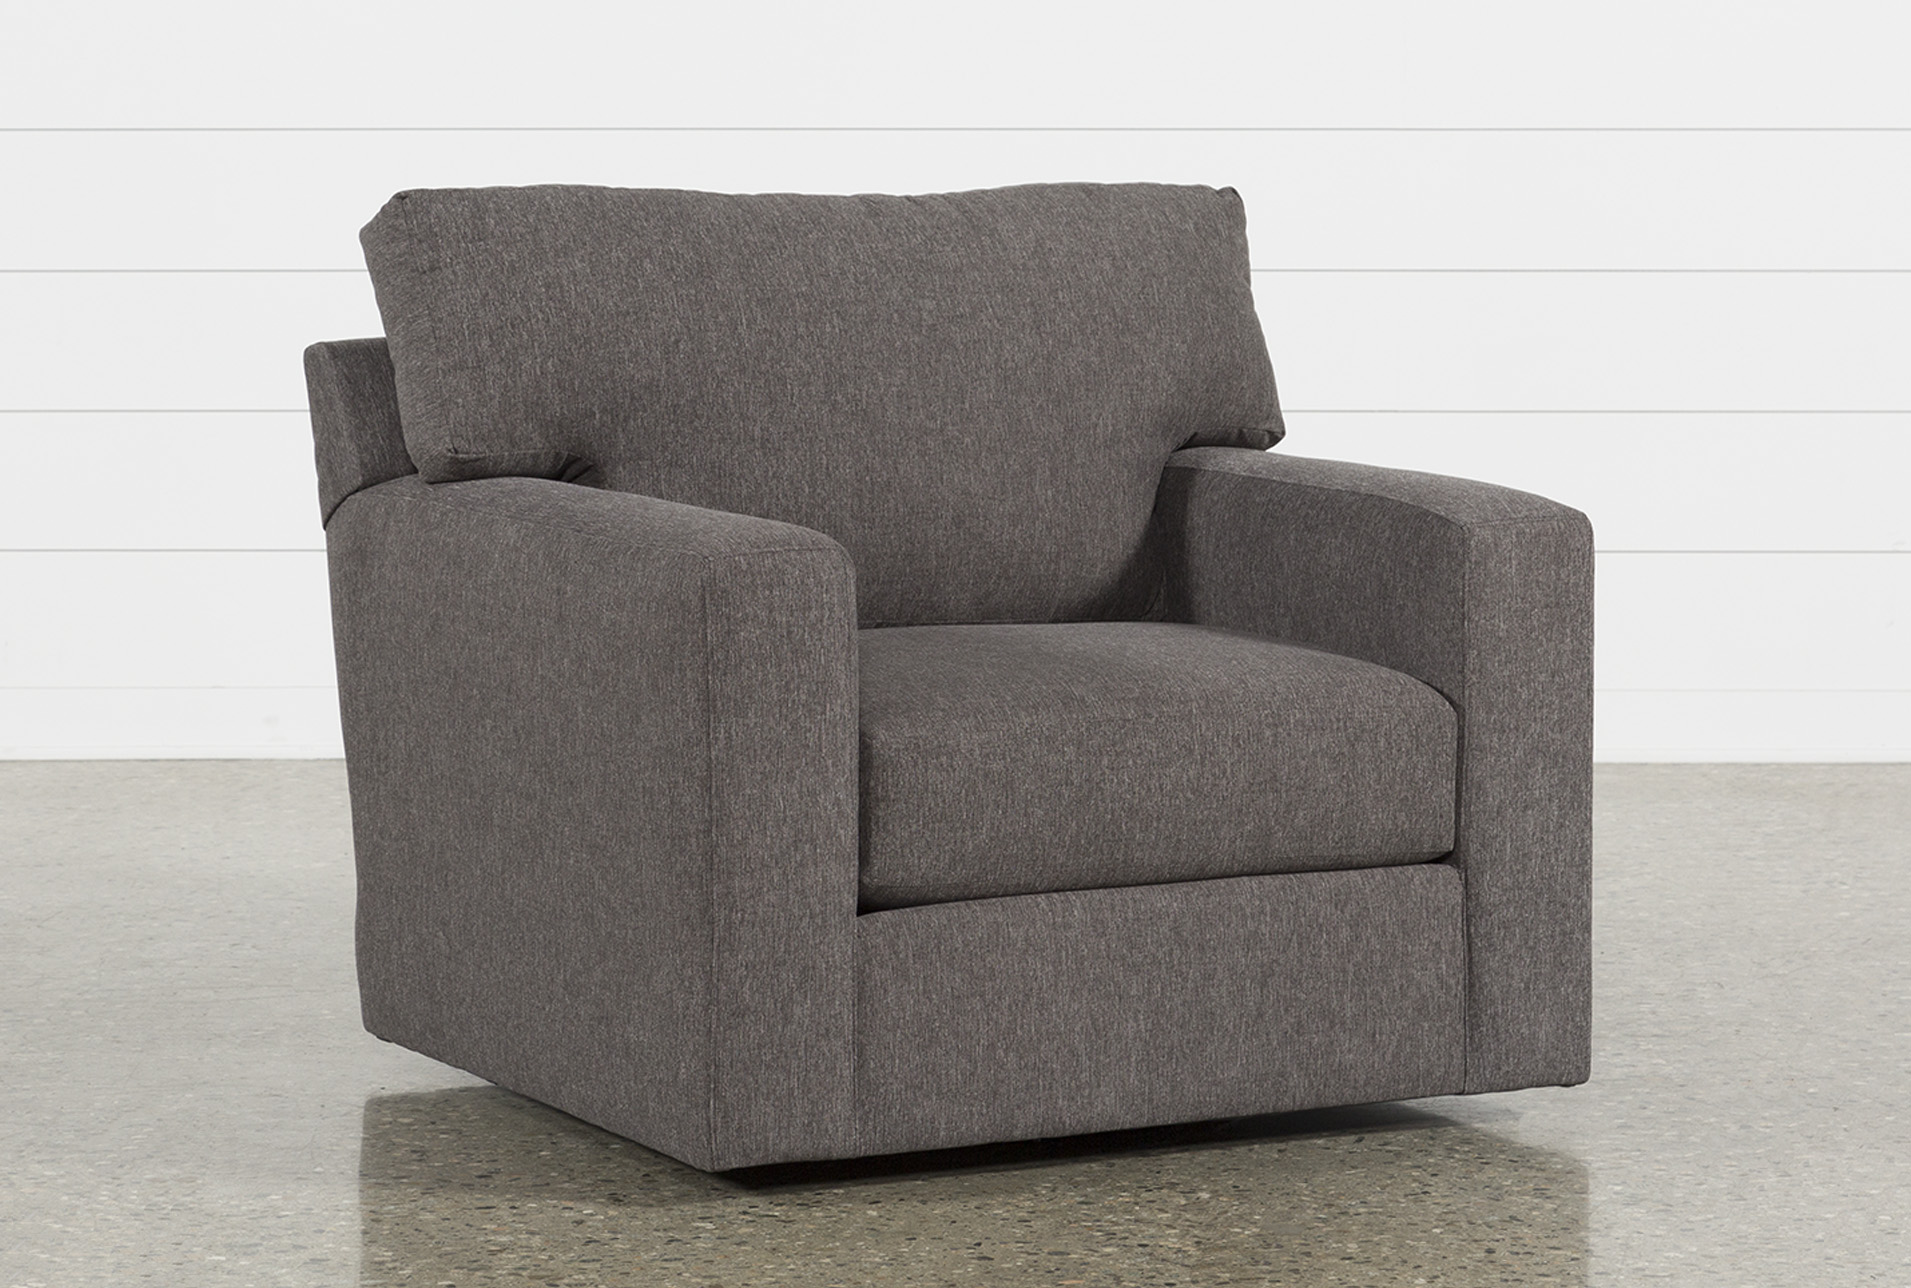 Mercer Foam Swivel Chair (Qty: 1) Has Been Successfully Added To Your Cart.